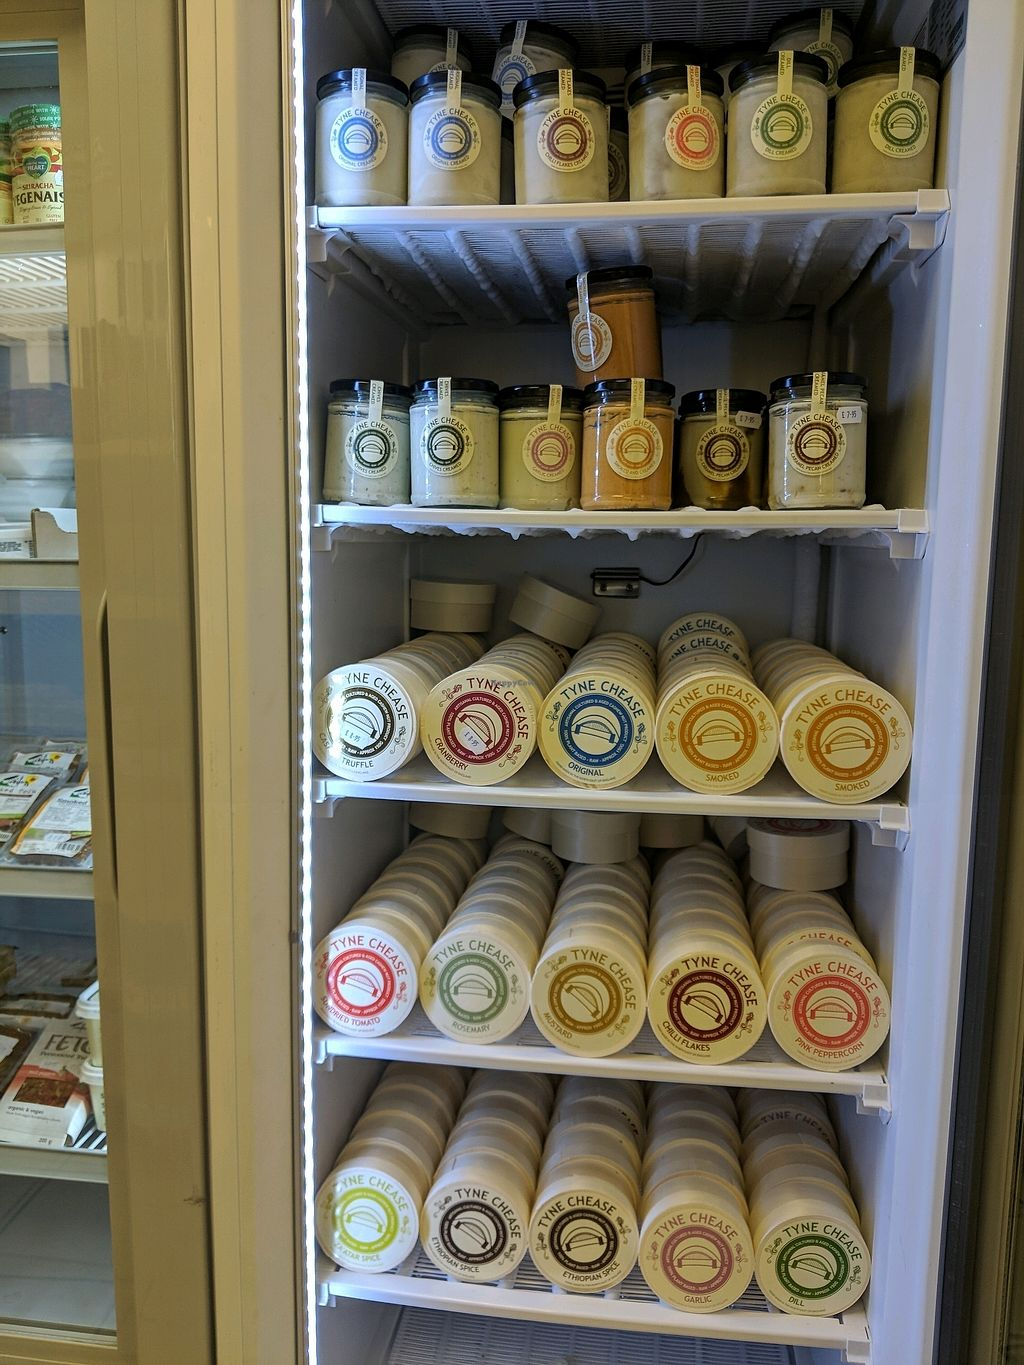 """Photo of Farplace Vegan Store  by <a href=""""/members/profile/HollyMusgrove"""">HollyMusgrove</a> <br/>The Chease Freezer <br/> February 14, 2018  - <a href='/contact/abuse/image/62070/359358'>Report</a>"""